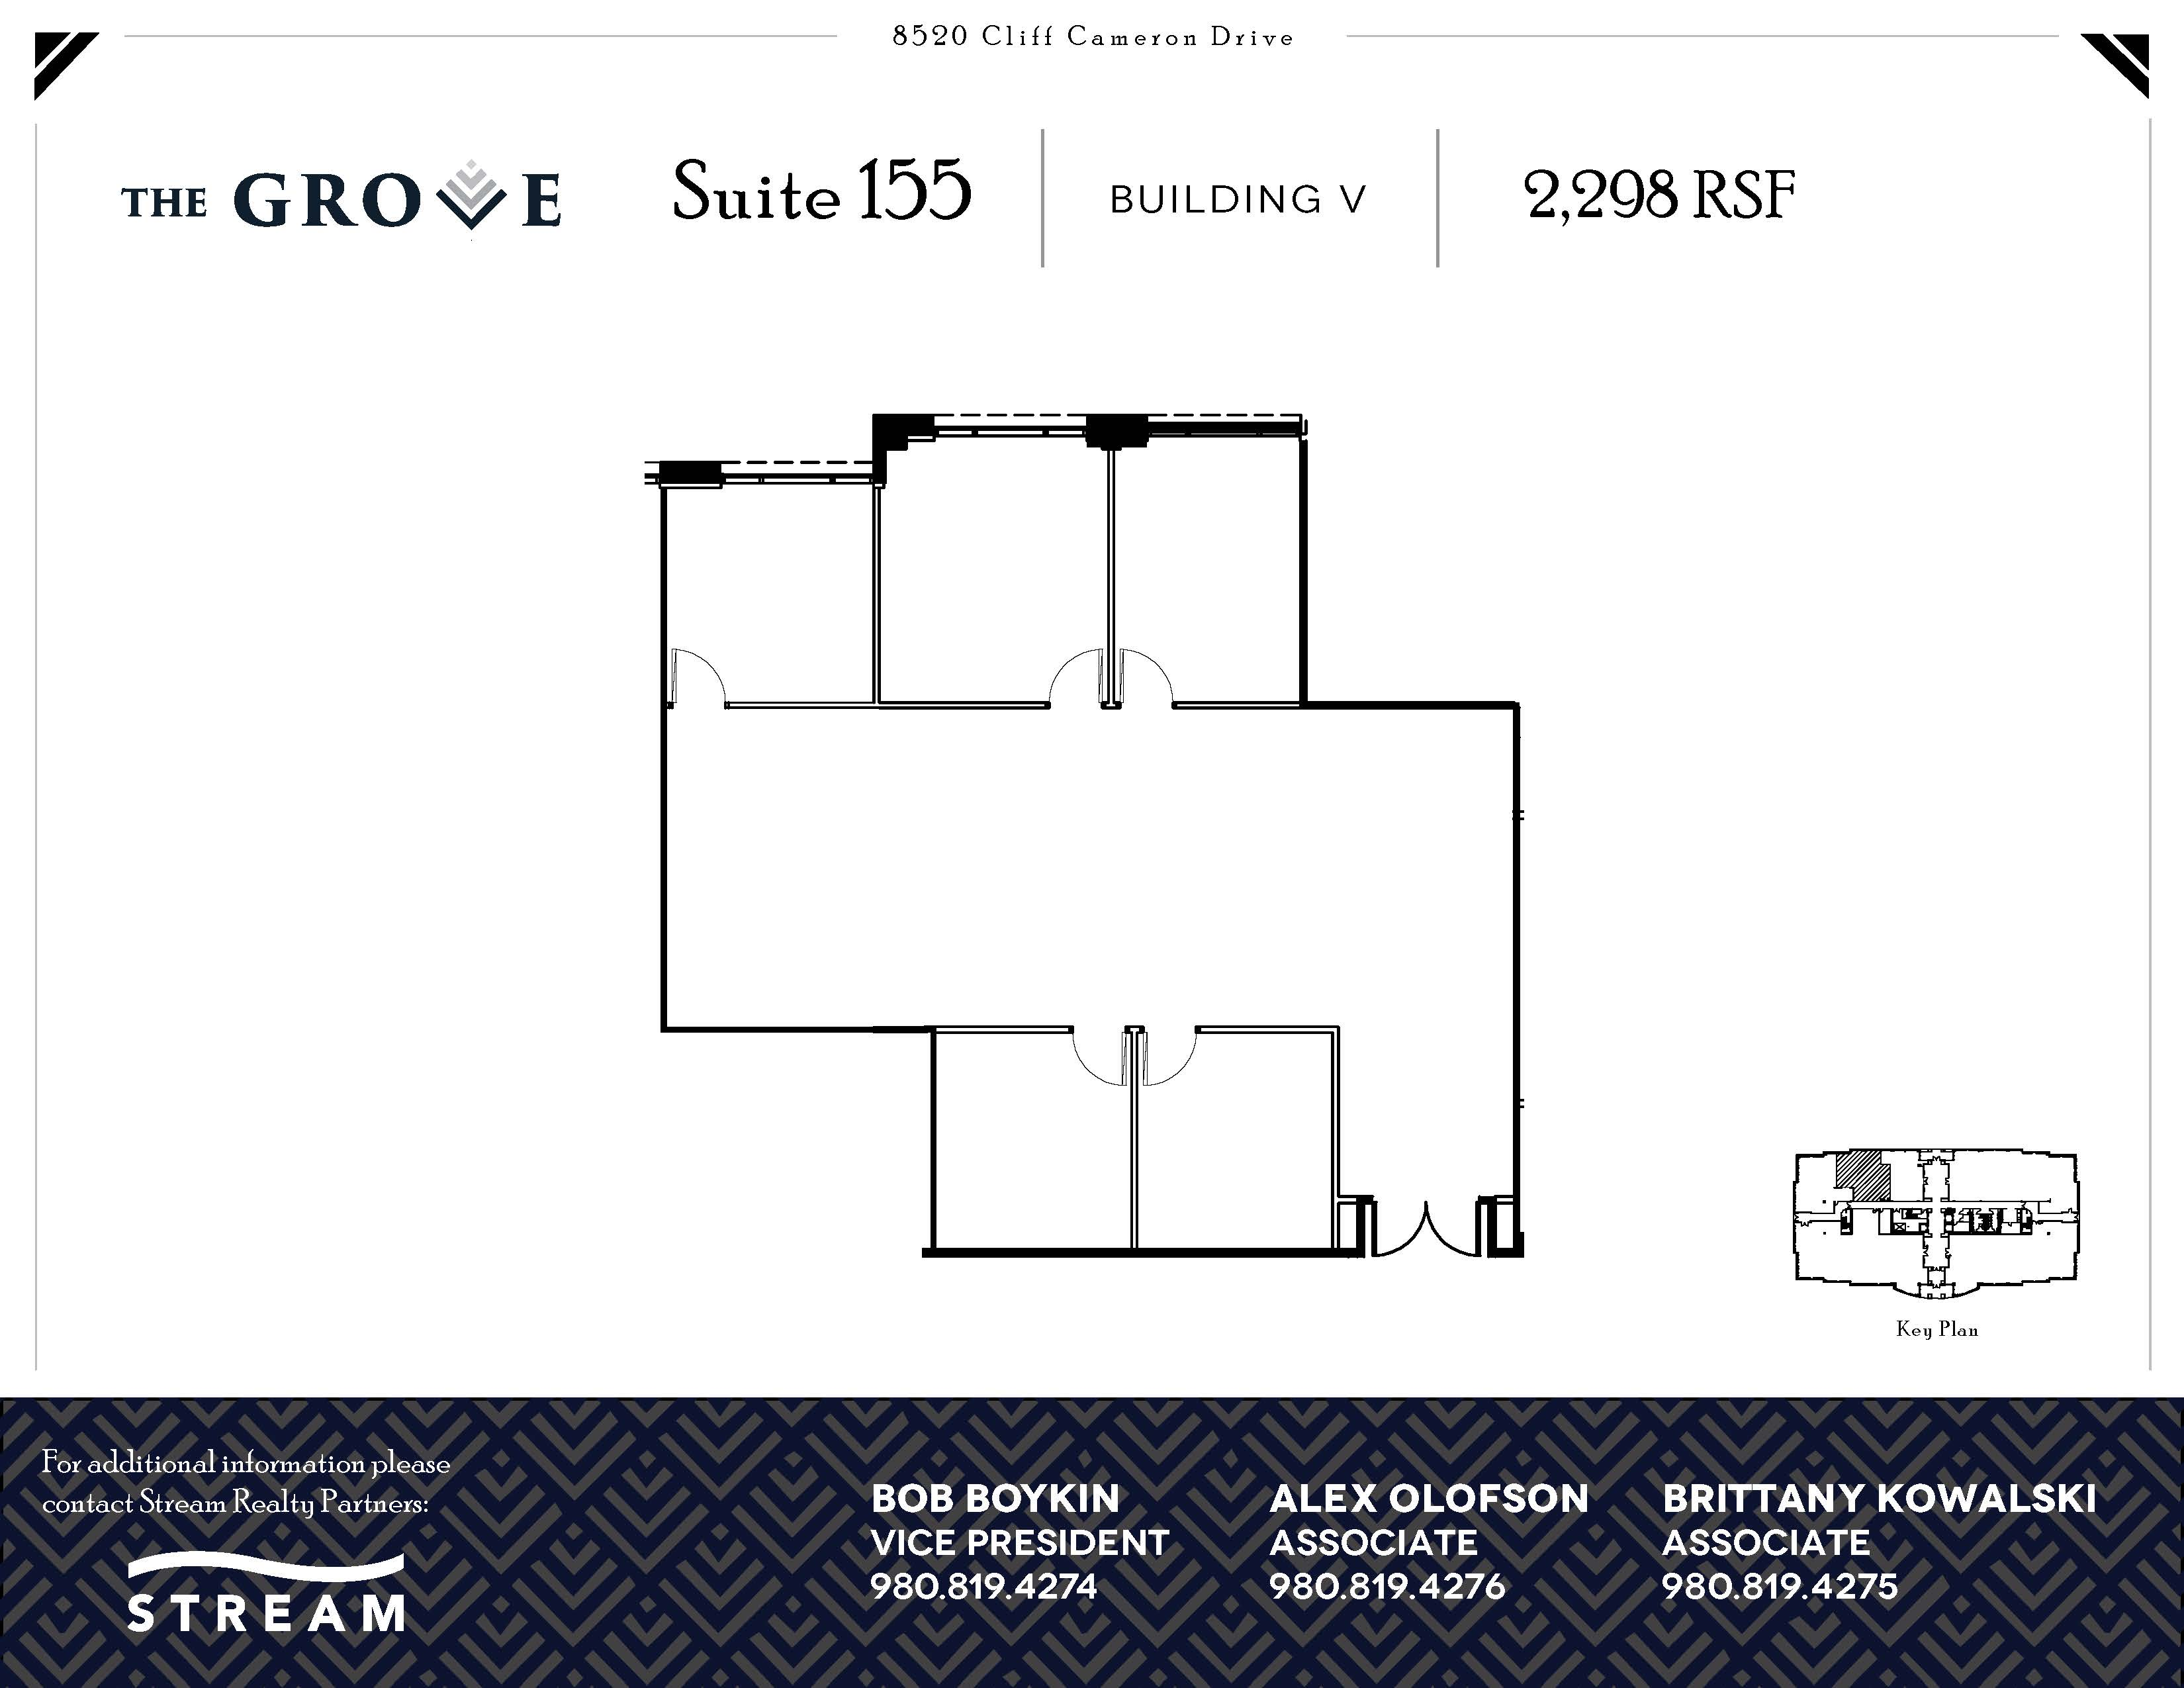 The Grove V [8520] -- Suite 155 -- 2,298